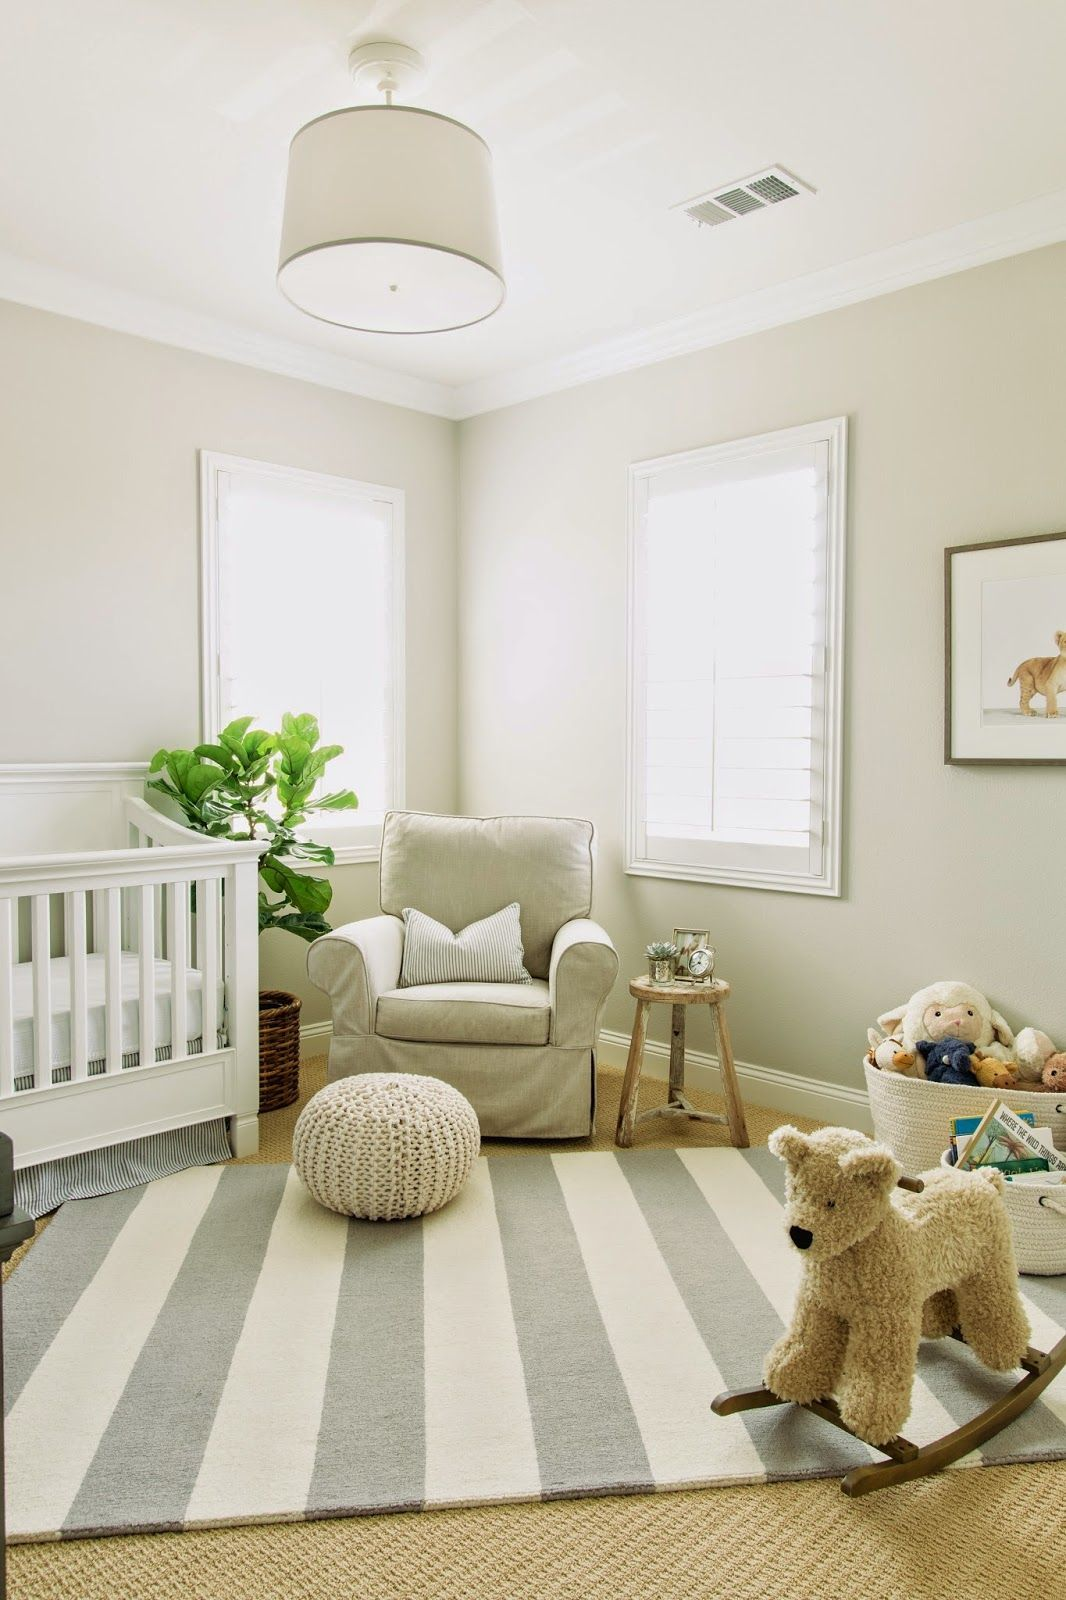 The Honeybee Luca 39 S Neutral Nursery Nurseryrugs Baby